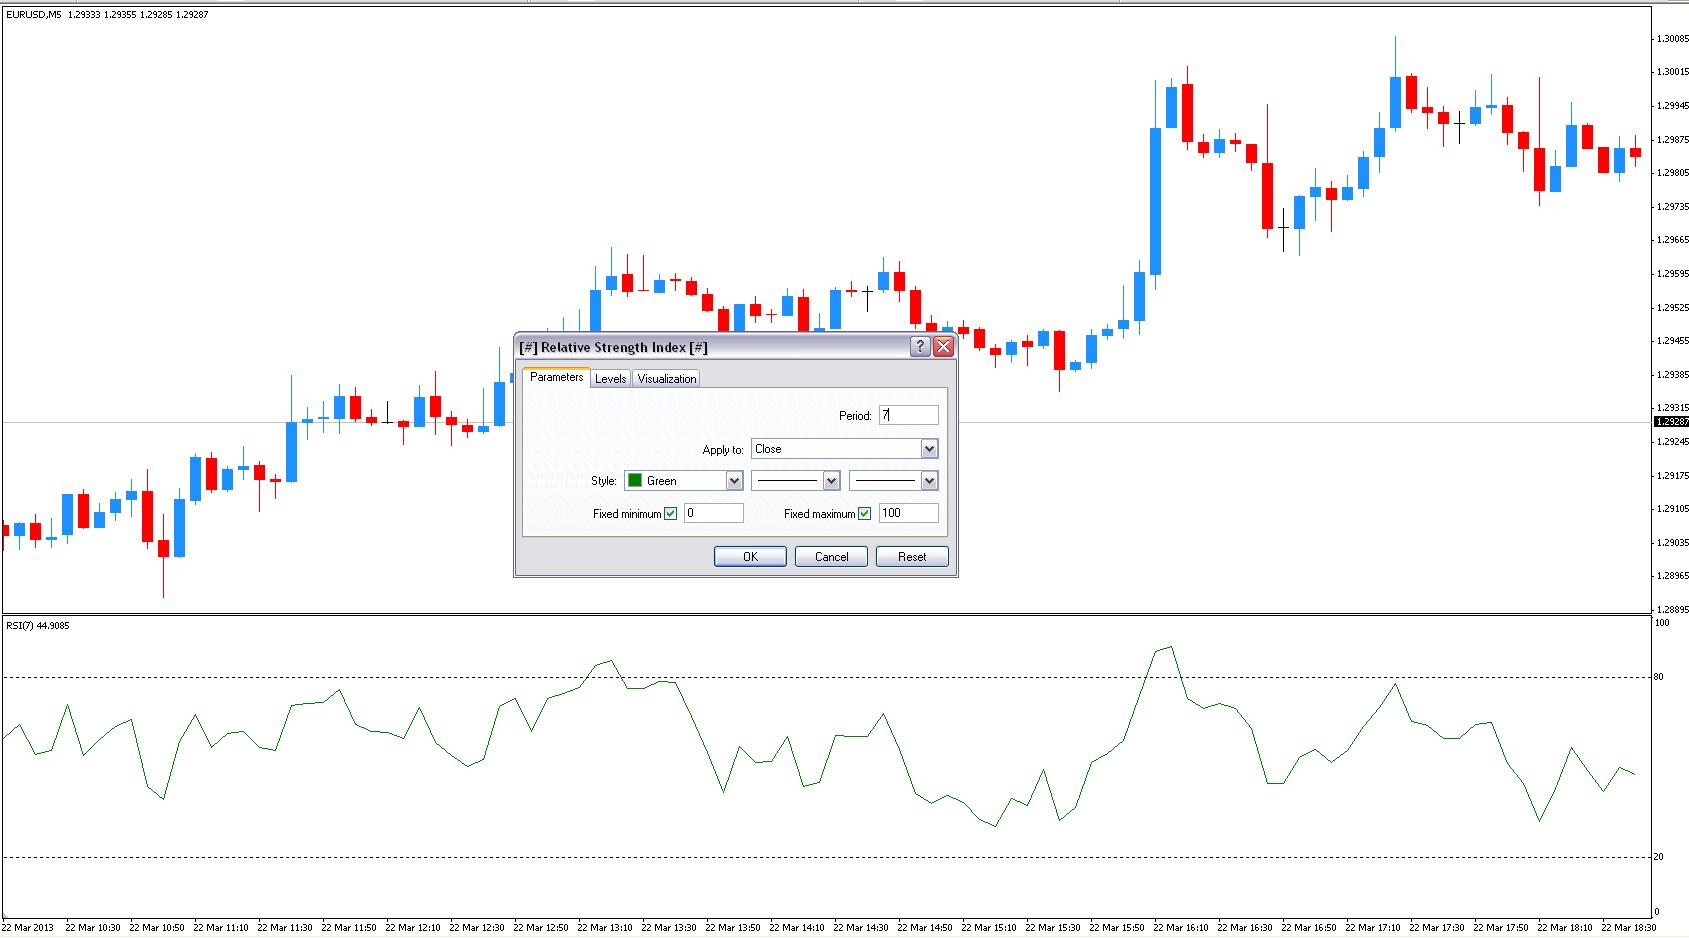 Using RSI Indicator to trade currency